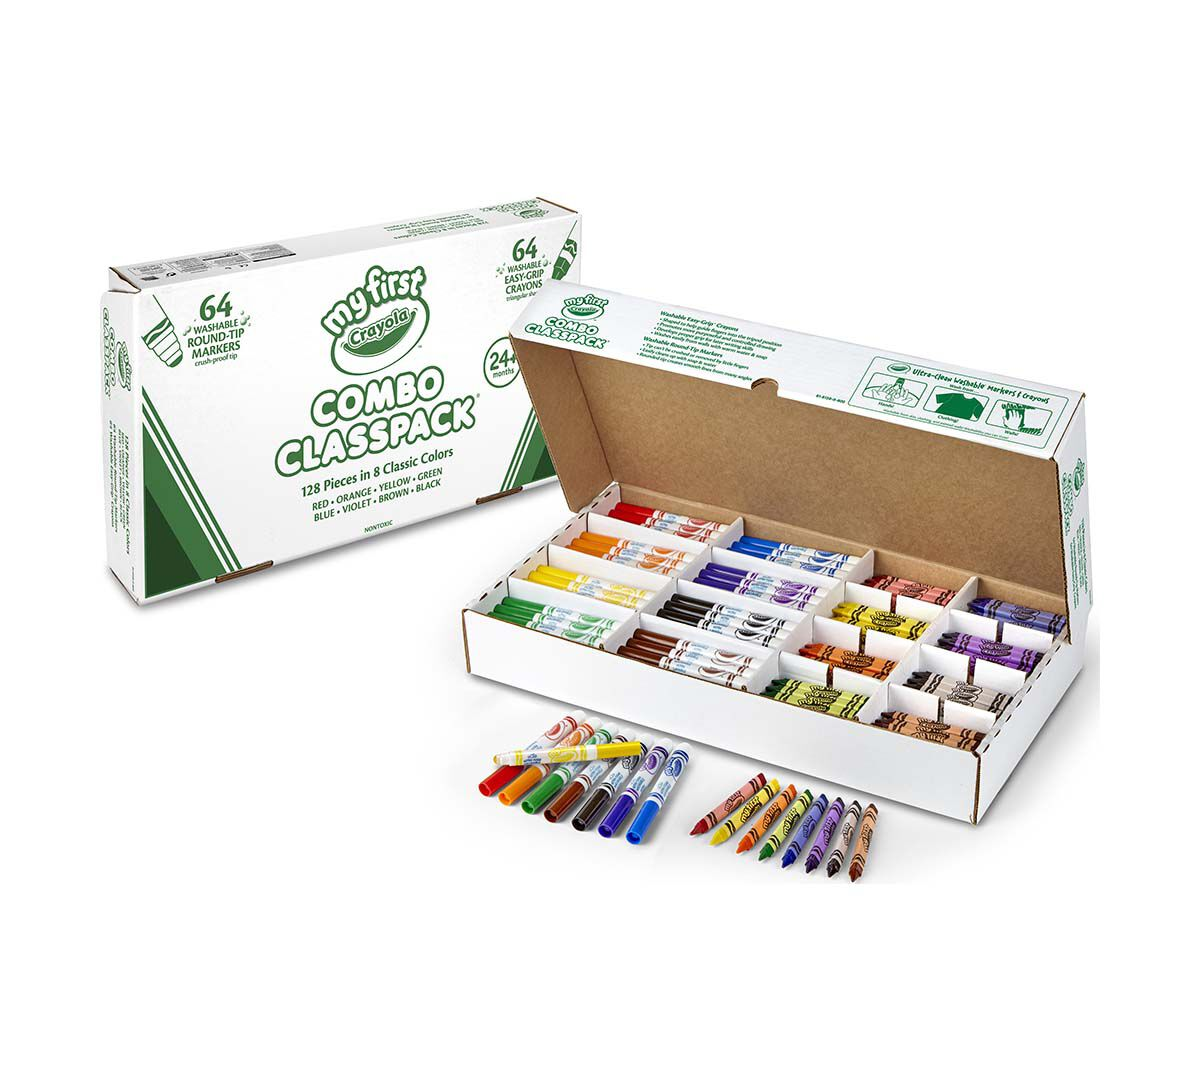 <p>Packed with a total of 128 pieces in eight classic colors, the My First Crayola Crayons and Markers Combo Classpack encourages kids to get creative. This pack of 64 washable conical-tip markers and 64 easy-grip no-roll crayons is ideal for busy classrooms. A convenient cardboard box with corrugated cardboard dividers allow you to arrange the markers and crayons by color so everything stays organized and in one place.</p>